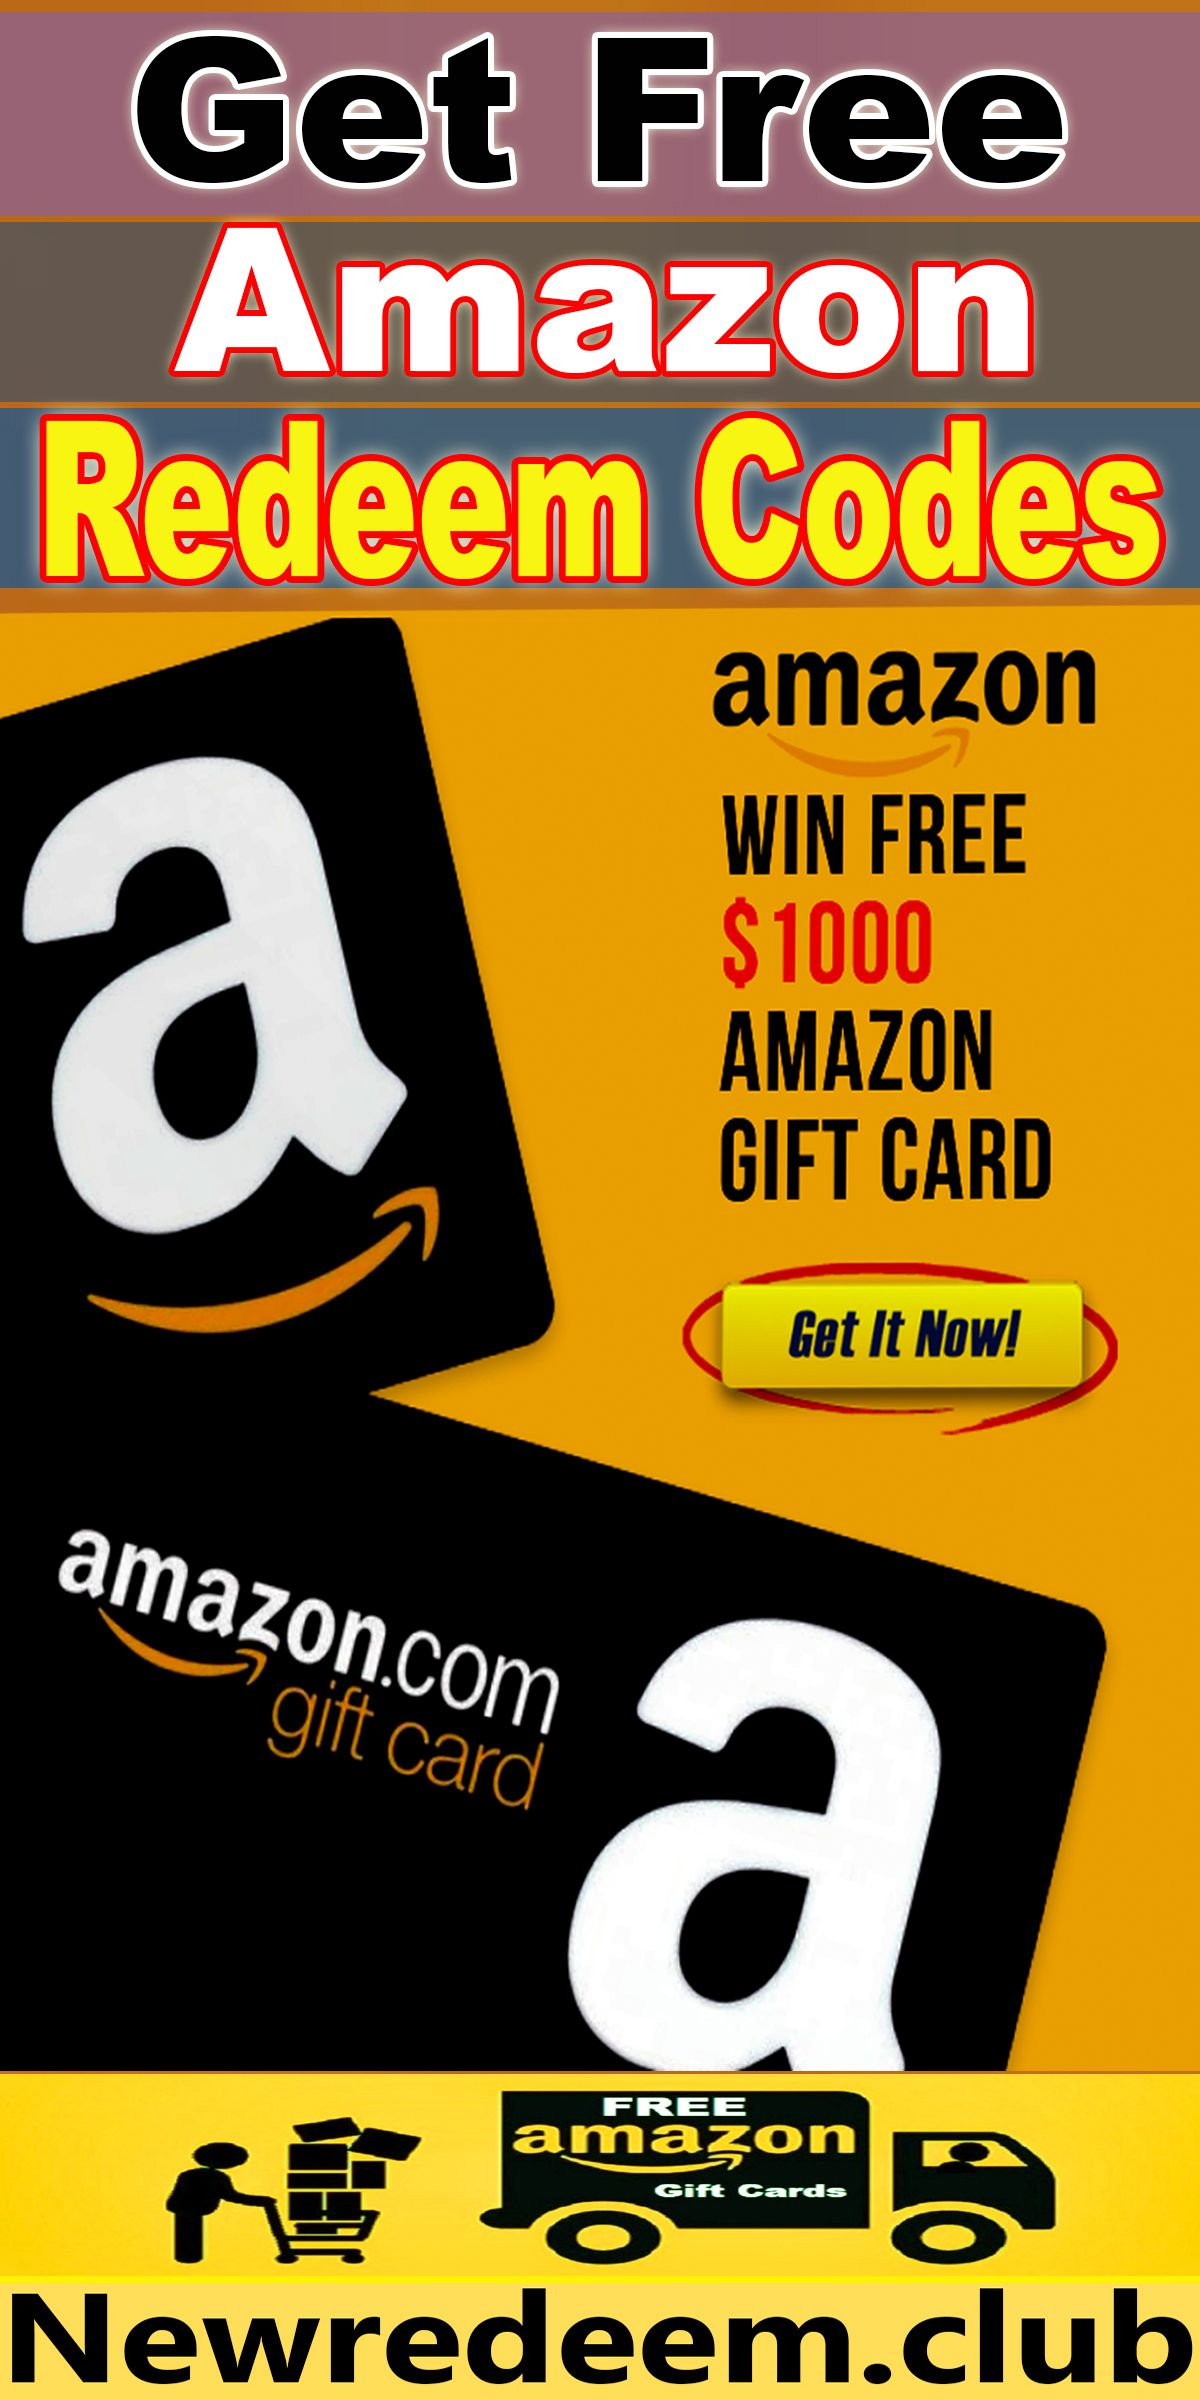 Easy way to earn free amazon gift cards 2020 in 2020